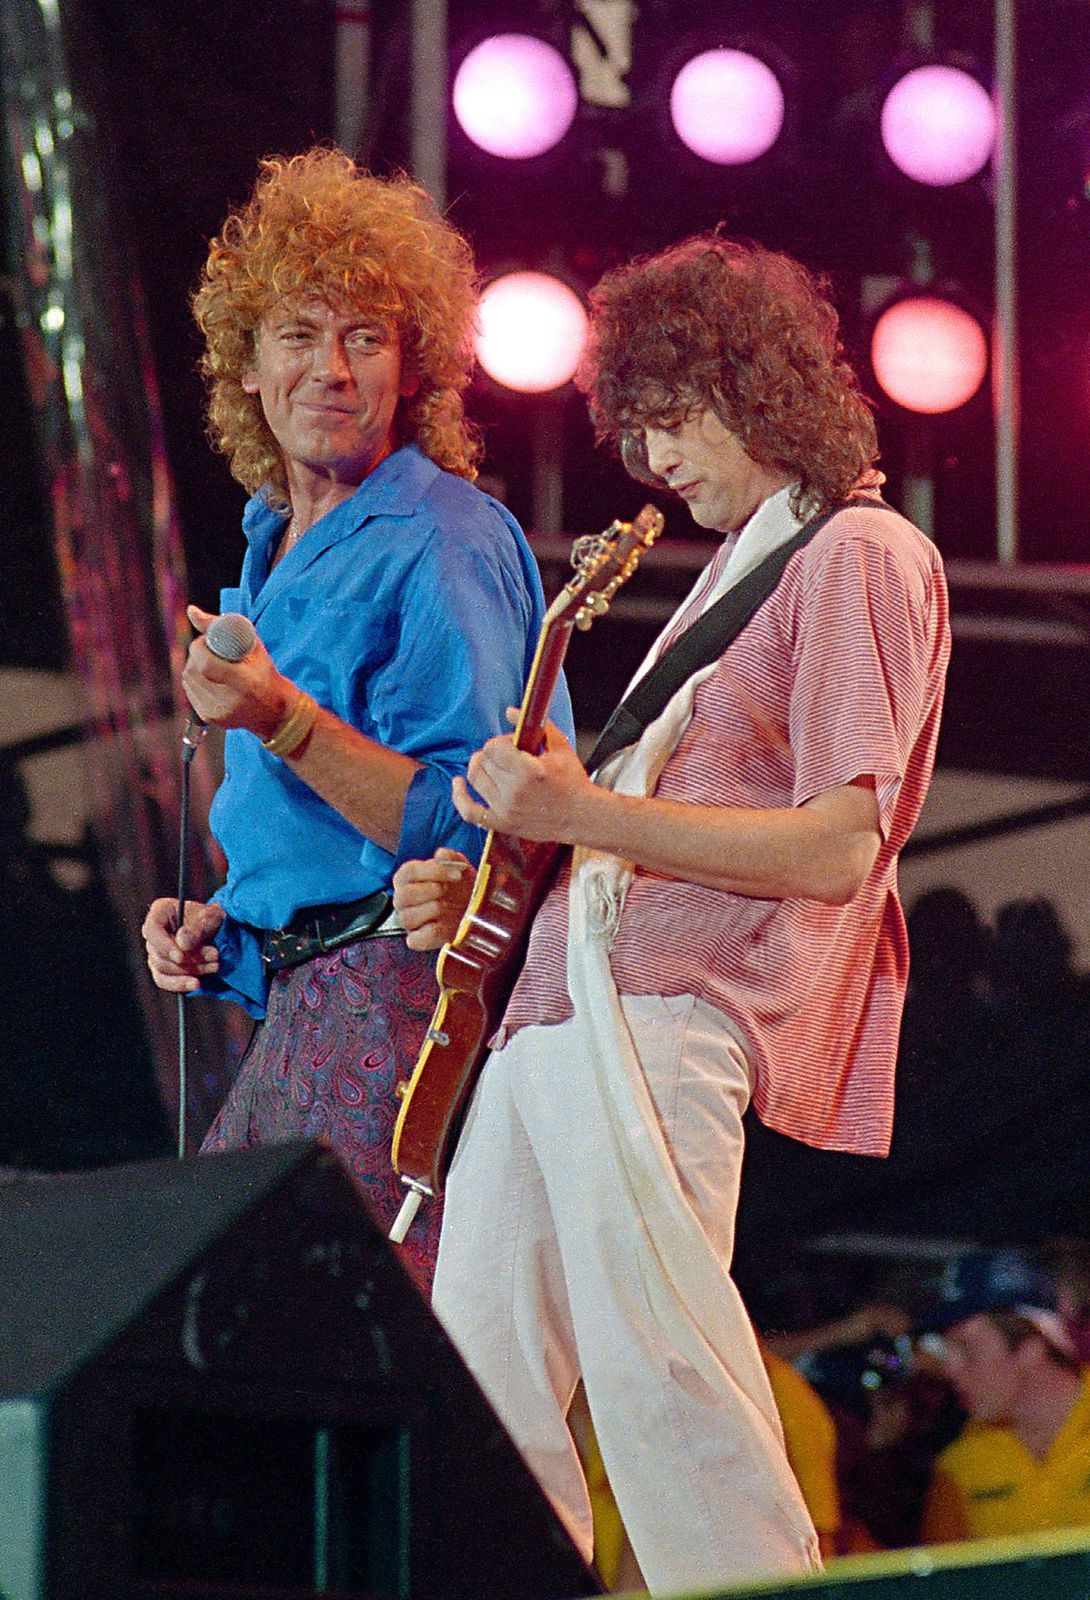 Robert Plant - with Jimmy Page at J.F.K. Stadium in Philadelphia for the LiveAid famine relief concert in 1985. AP PHOTO